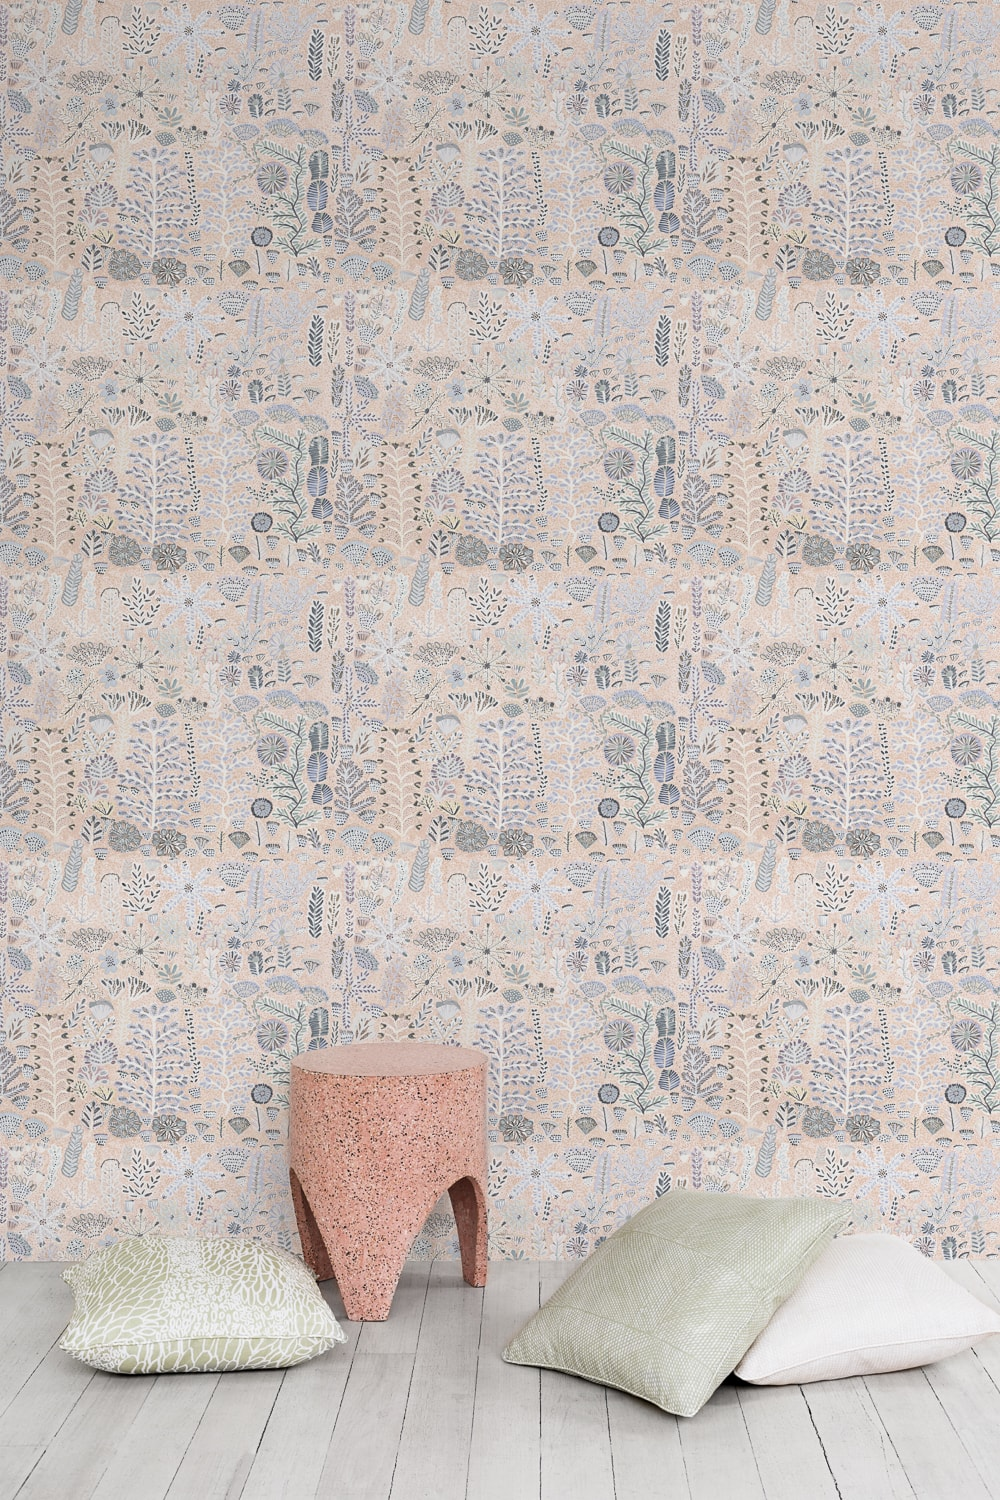 Sugarbag Dreaming 'Desert Rose' wallpaper